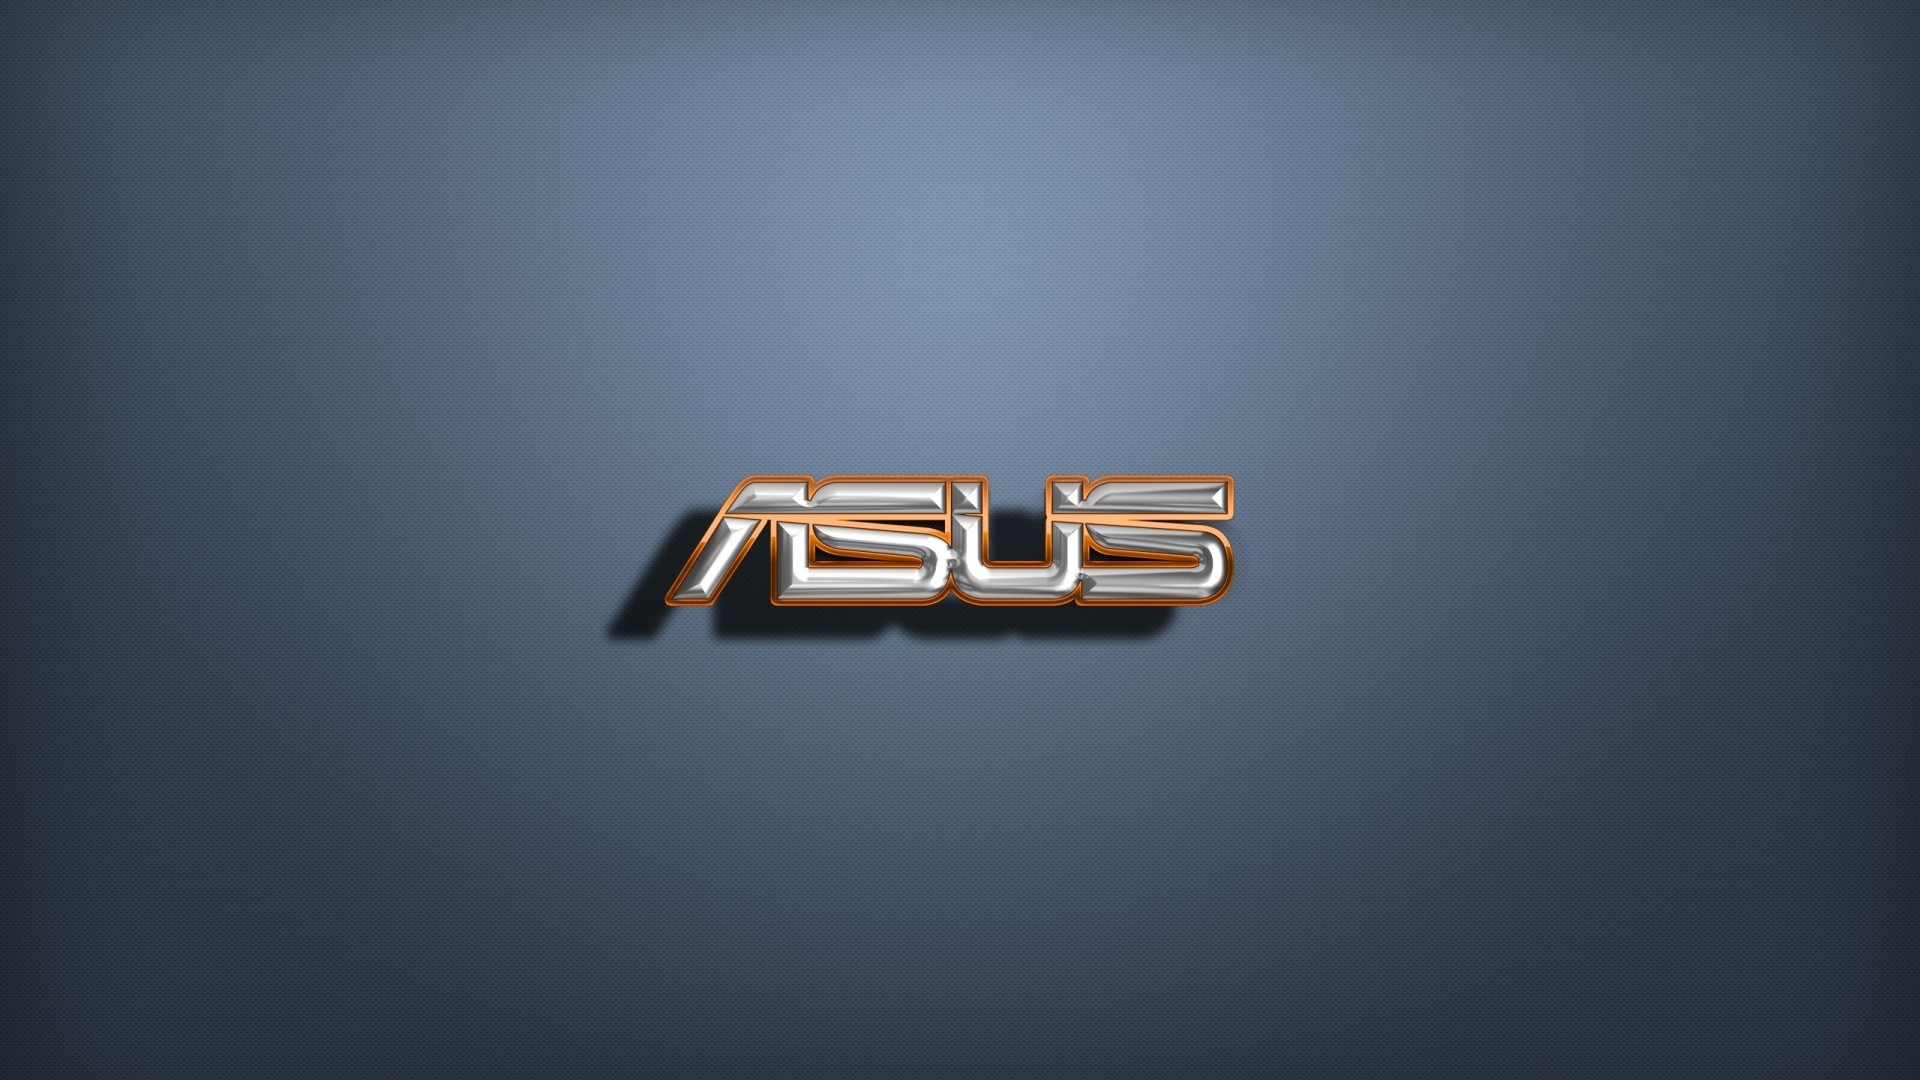 Preview wallpaper asus, minimalism, technology 1920×1080